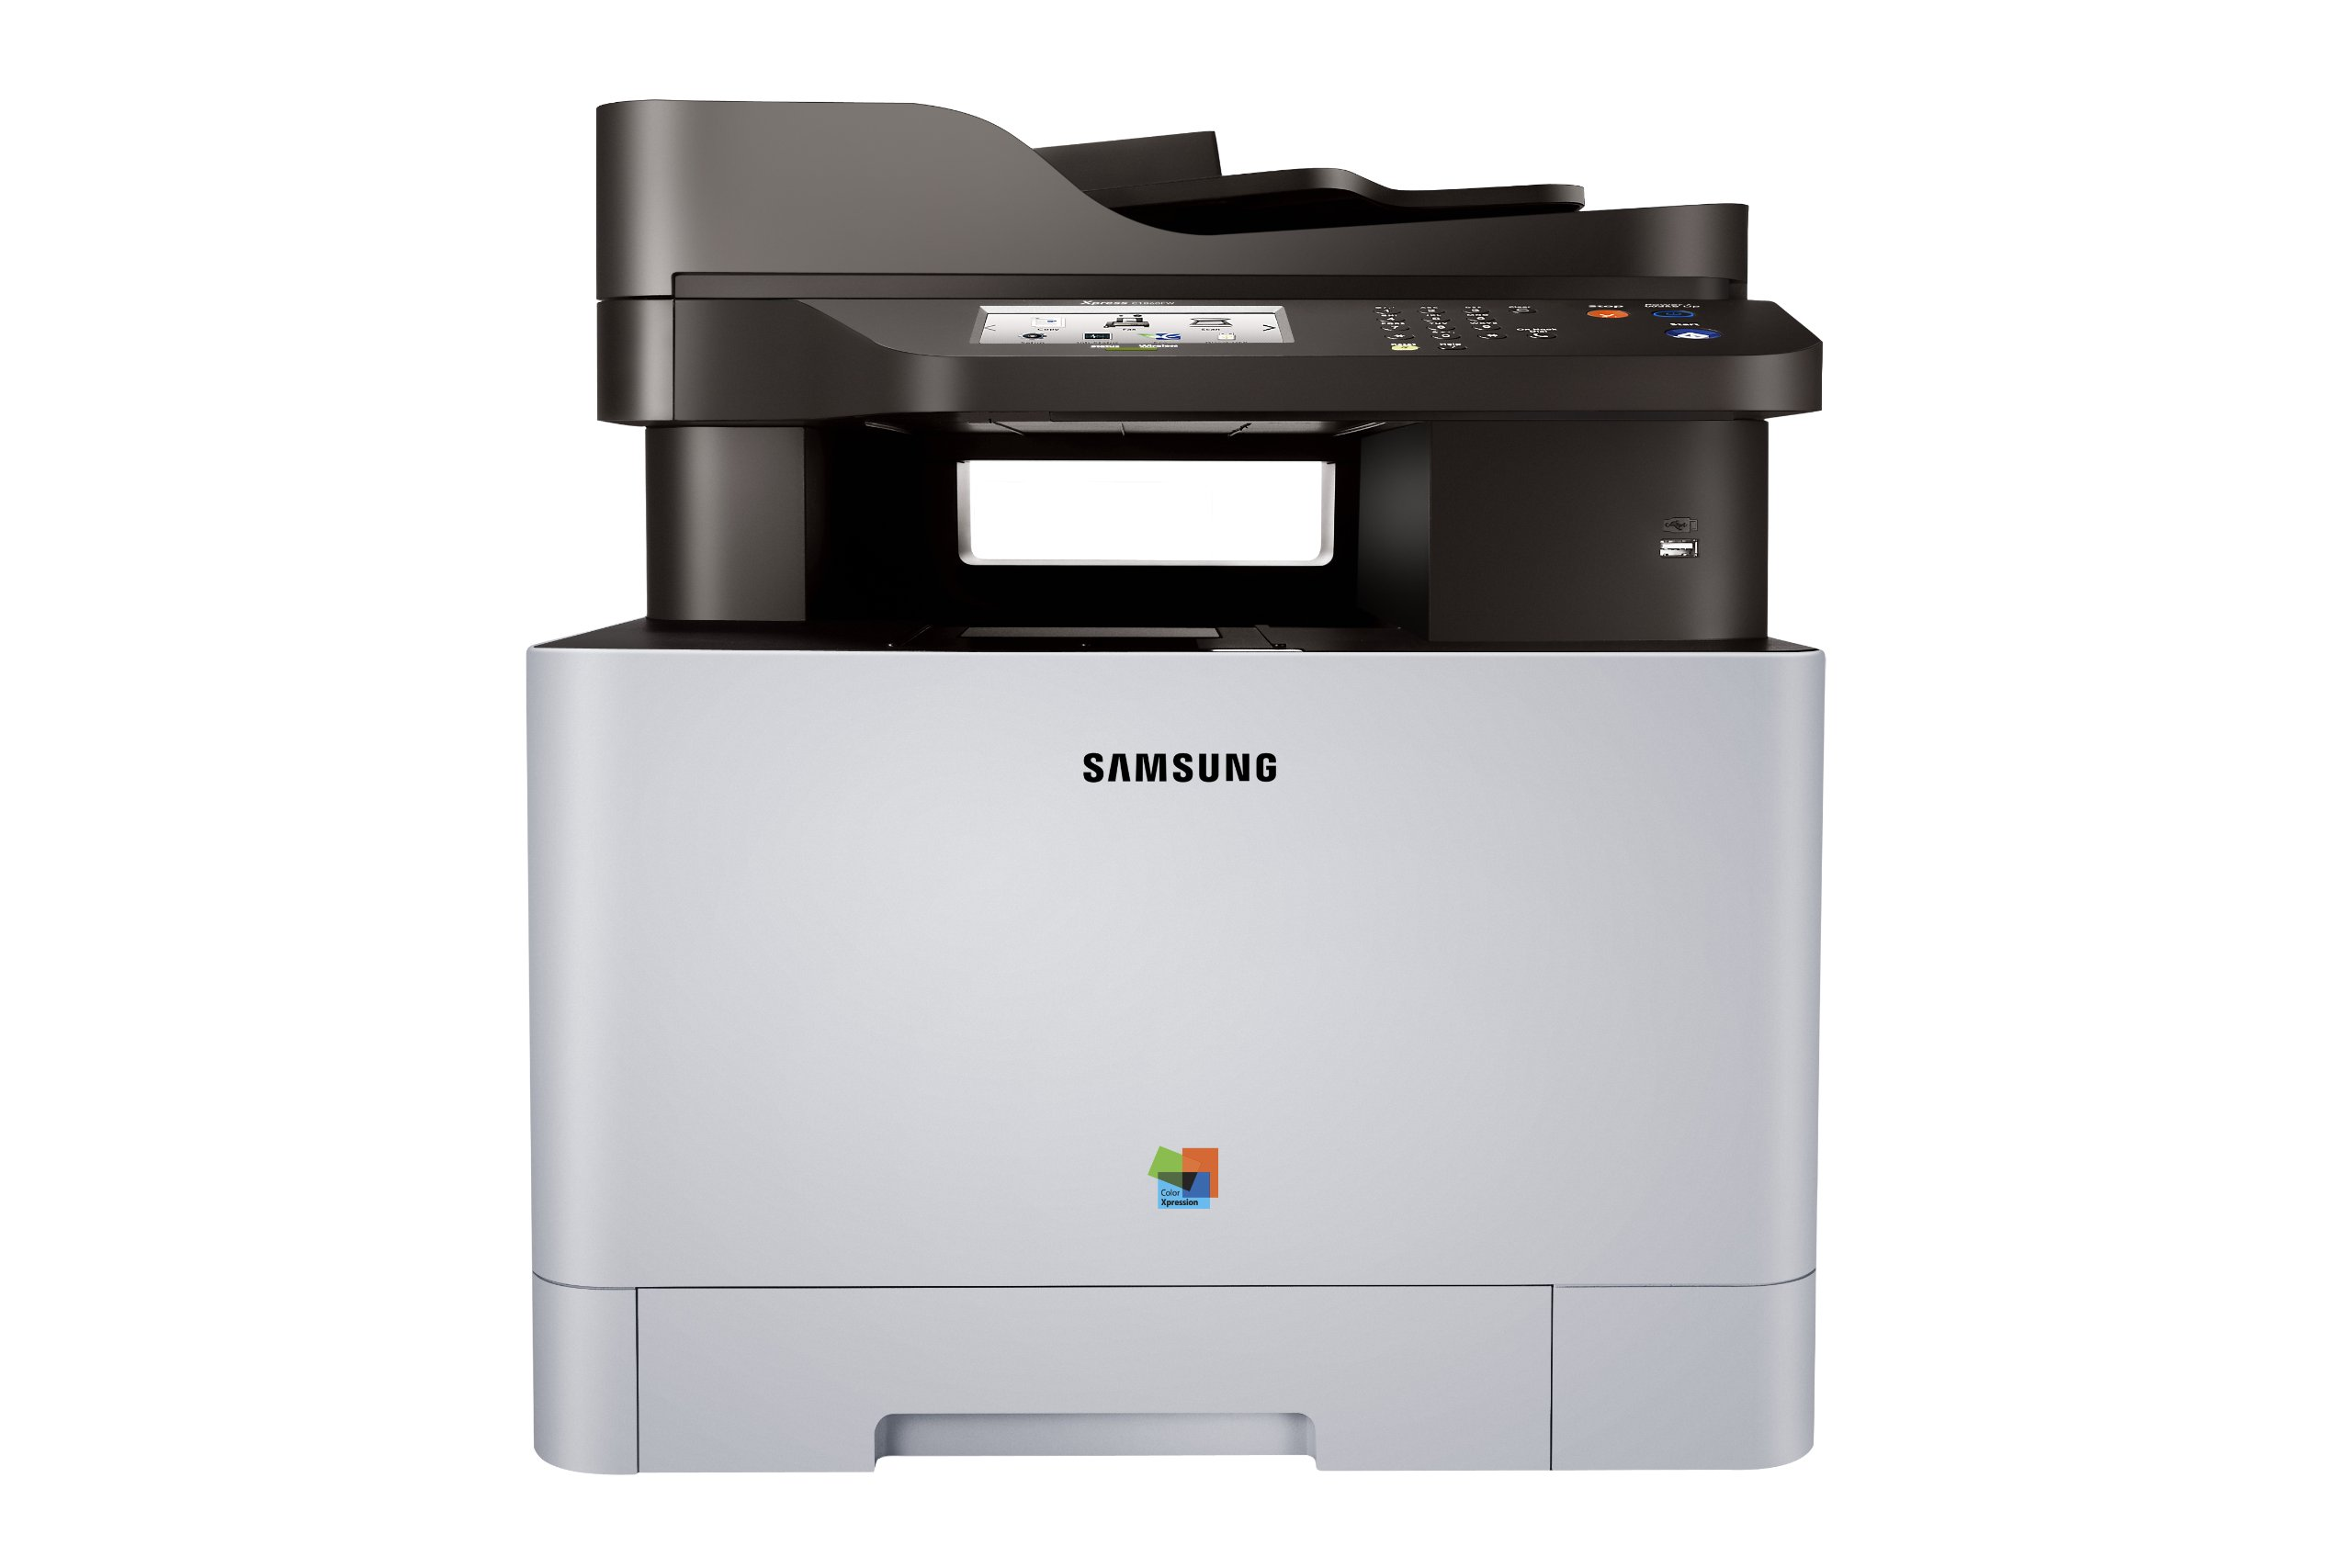 Samsung SL-C1860FW/XAA Wireless Color Printer with Scanner, Copier and Fax, Amazon Dash Replenishment Enabled by HP